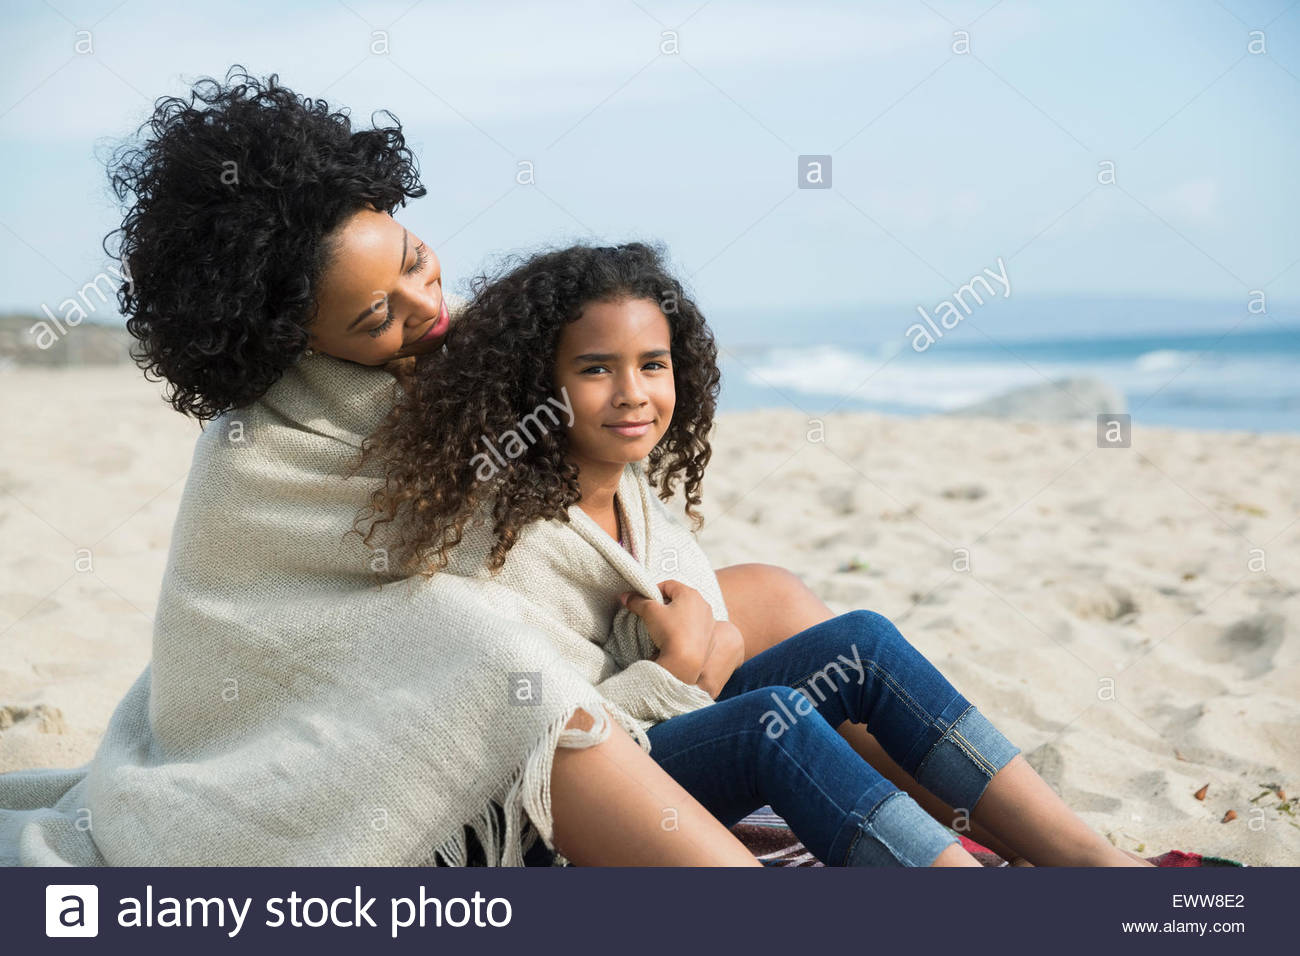 Mother and daughter wrapped in blanket on beach - Stock Image